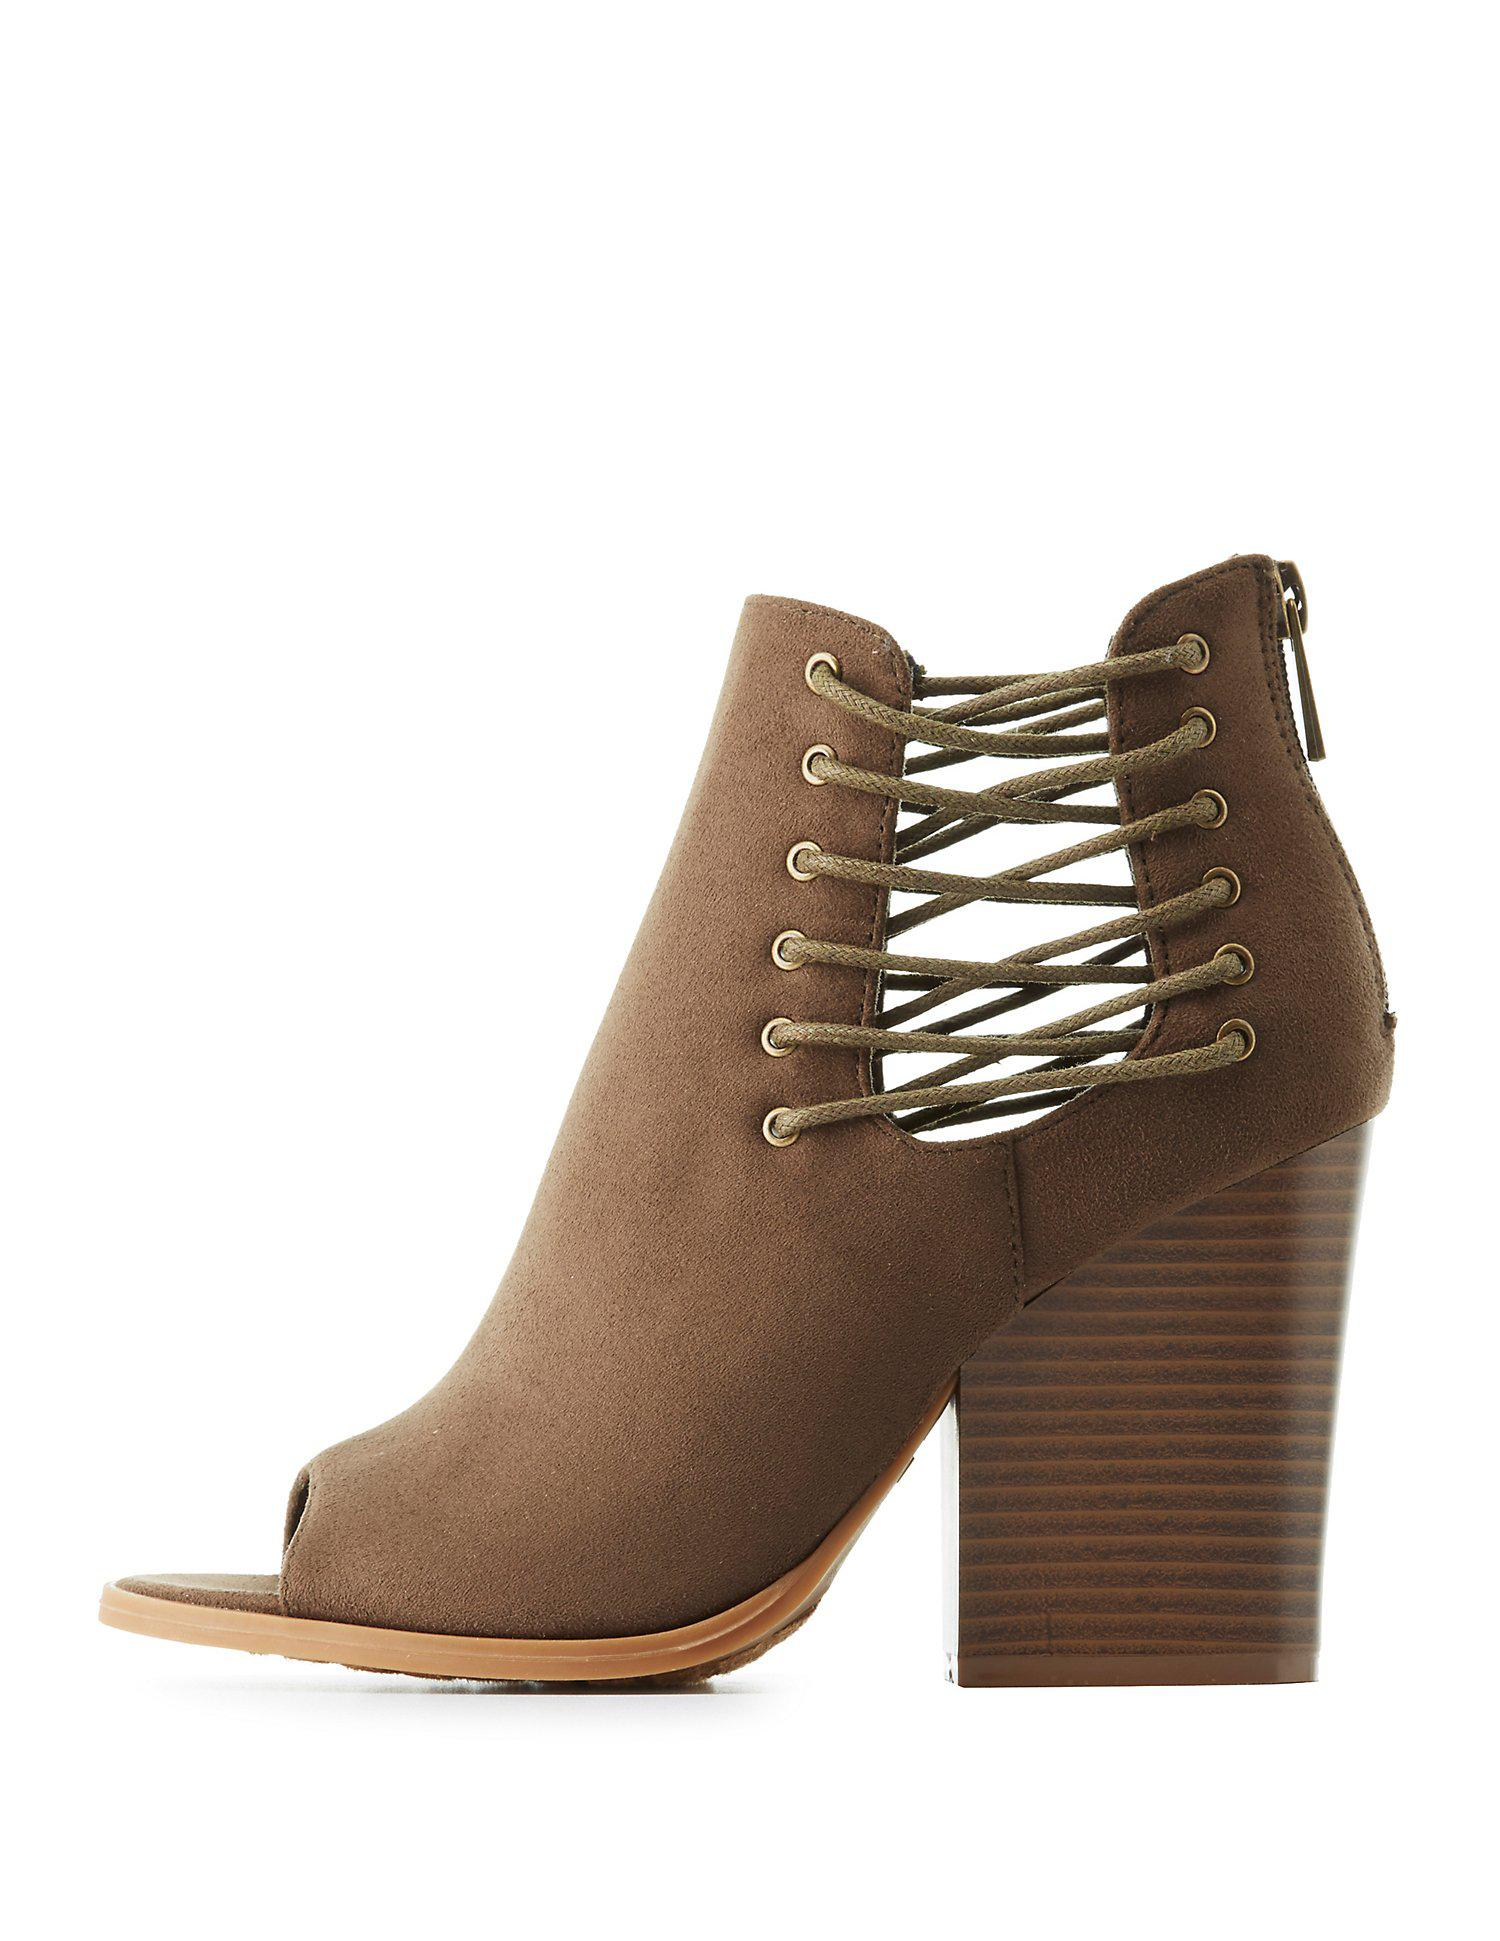 3a6d5919b33f Gallery. Previously sold at  Charlotte Russe · Women s Peep Toe Booties ...